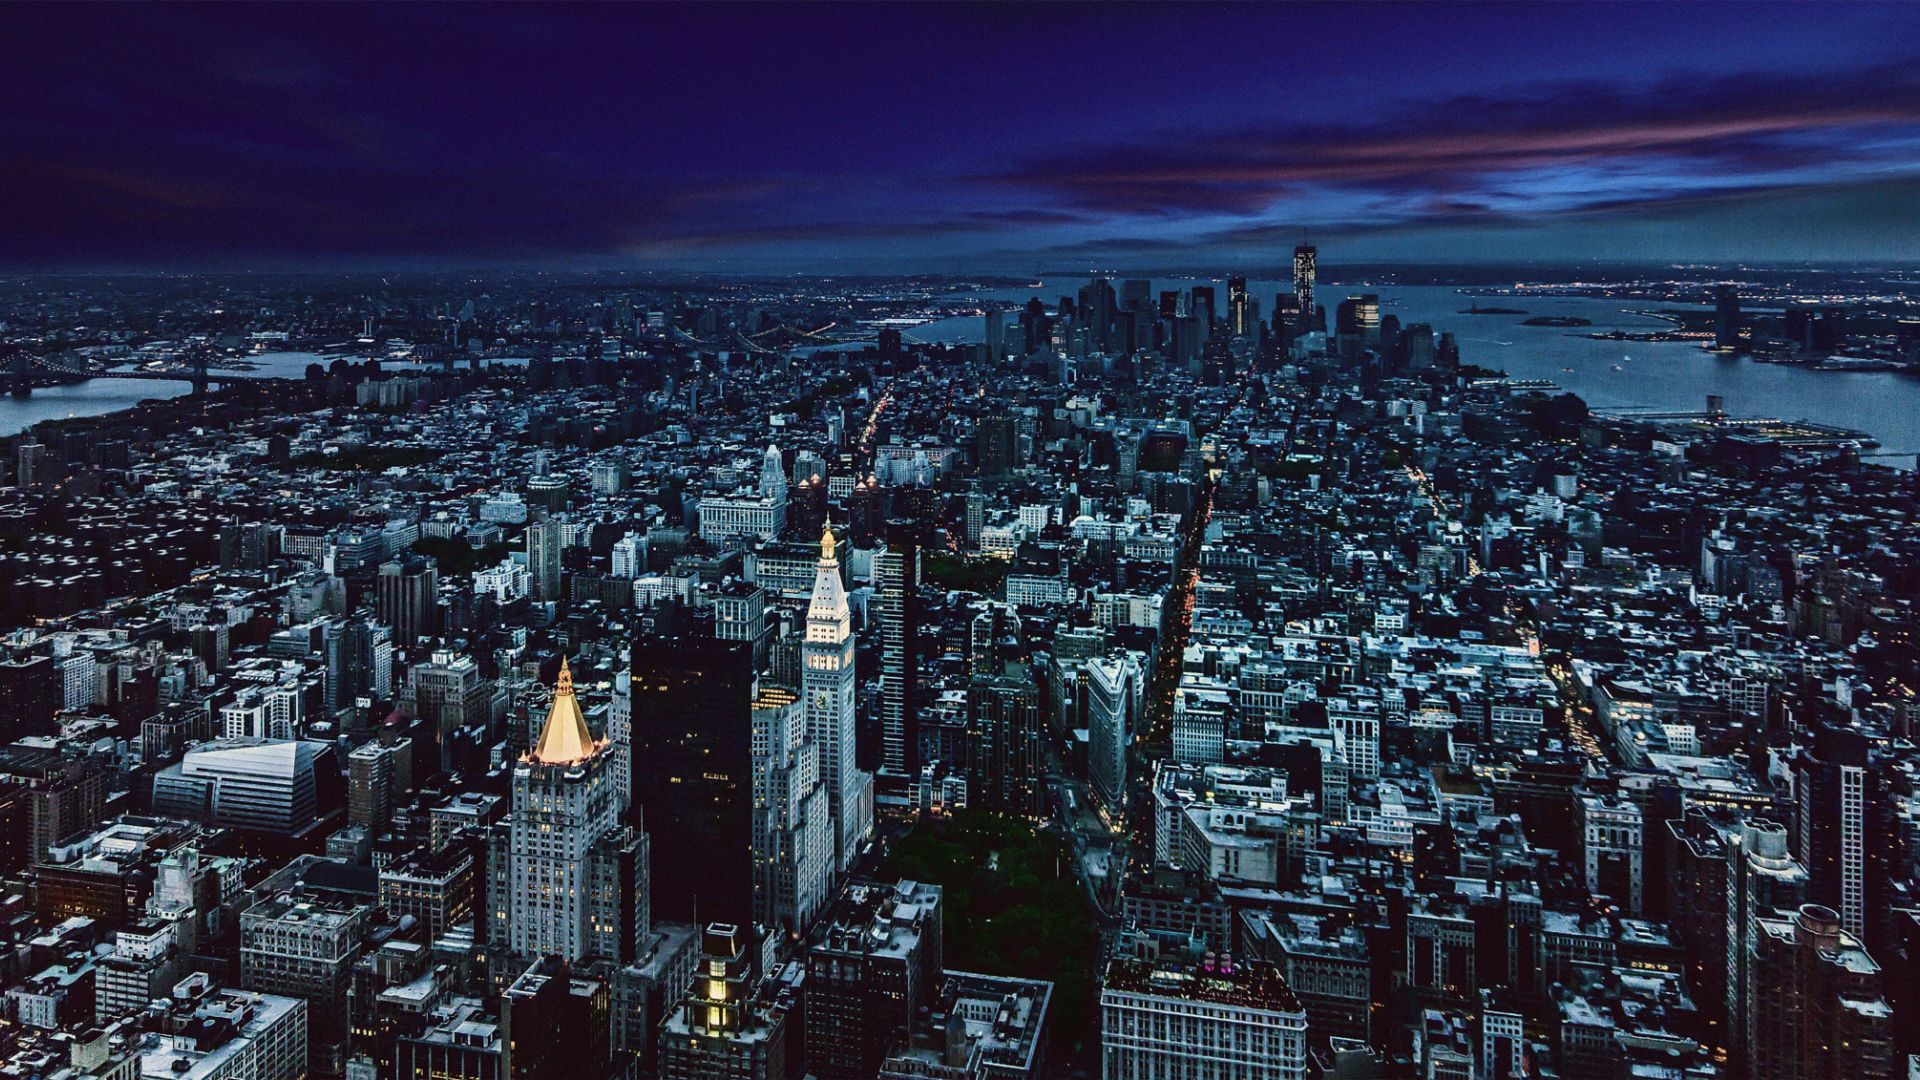 Desktop Wallpaper New York City Night Aerial View Hd Image Picture Background S8jq X